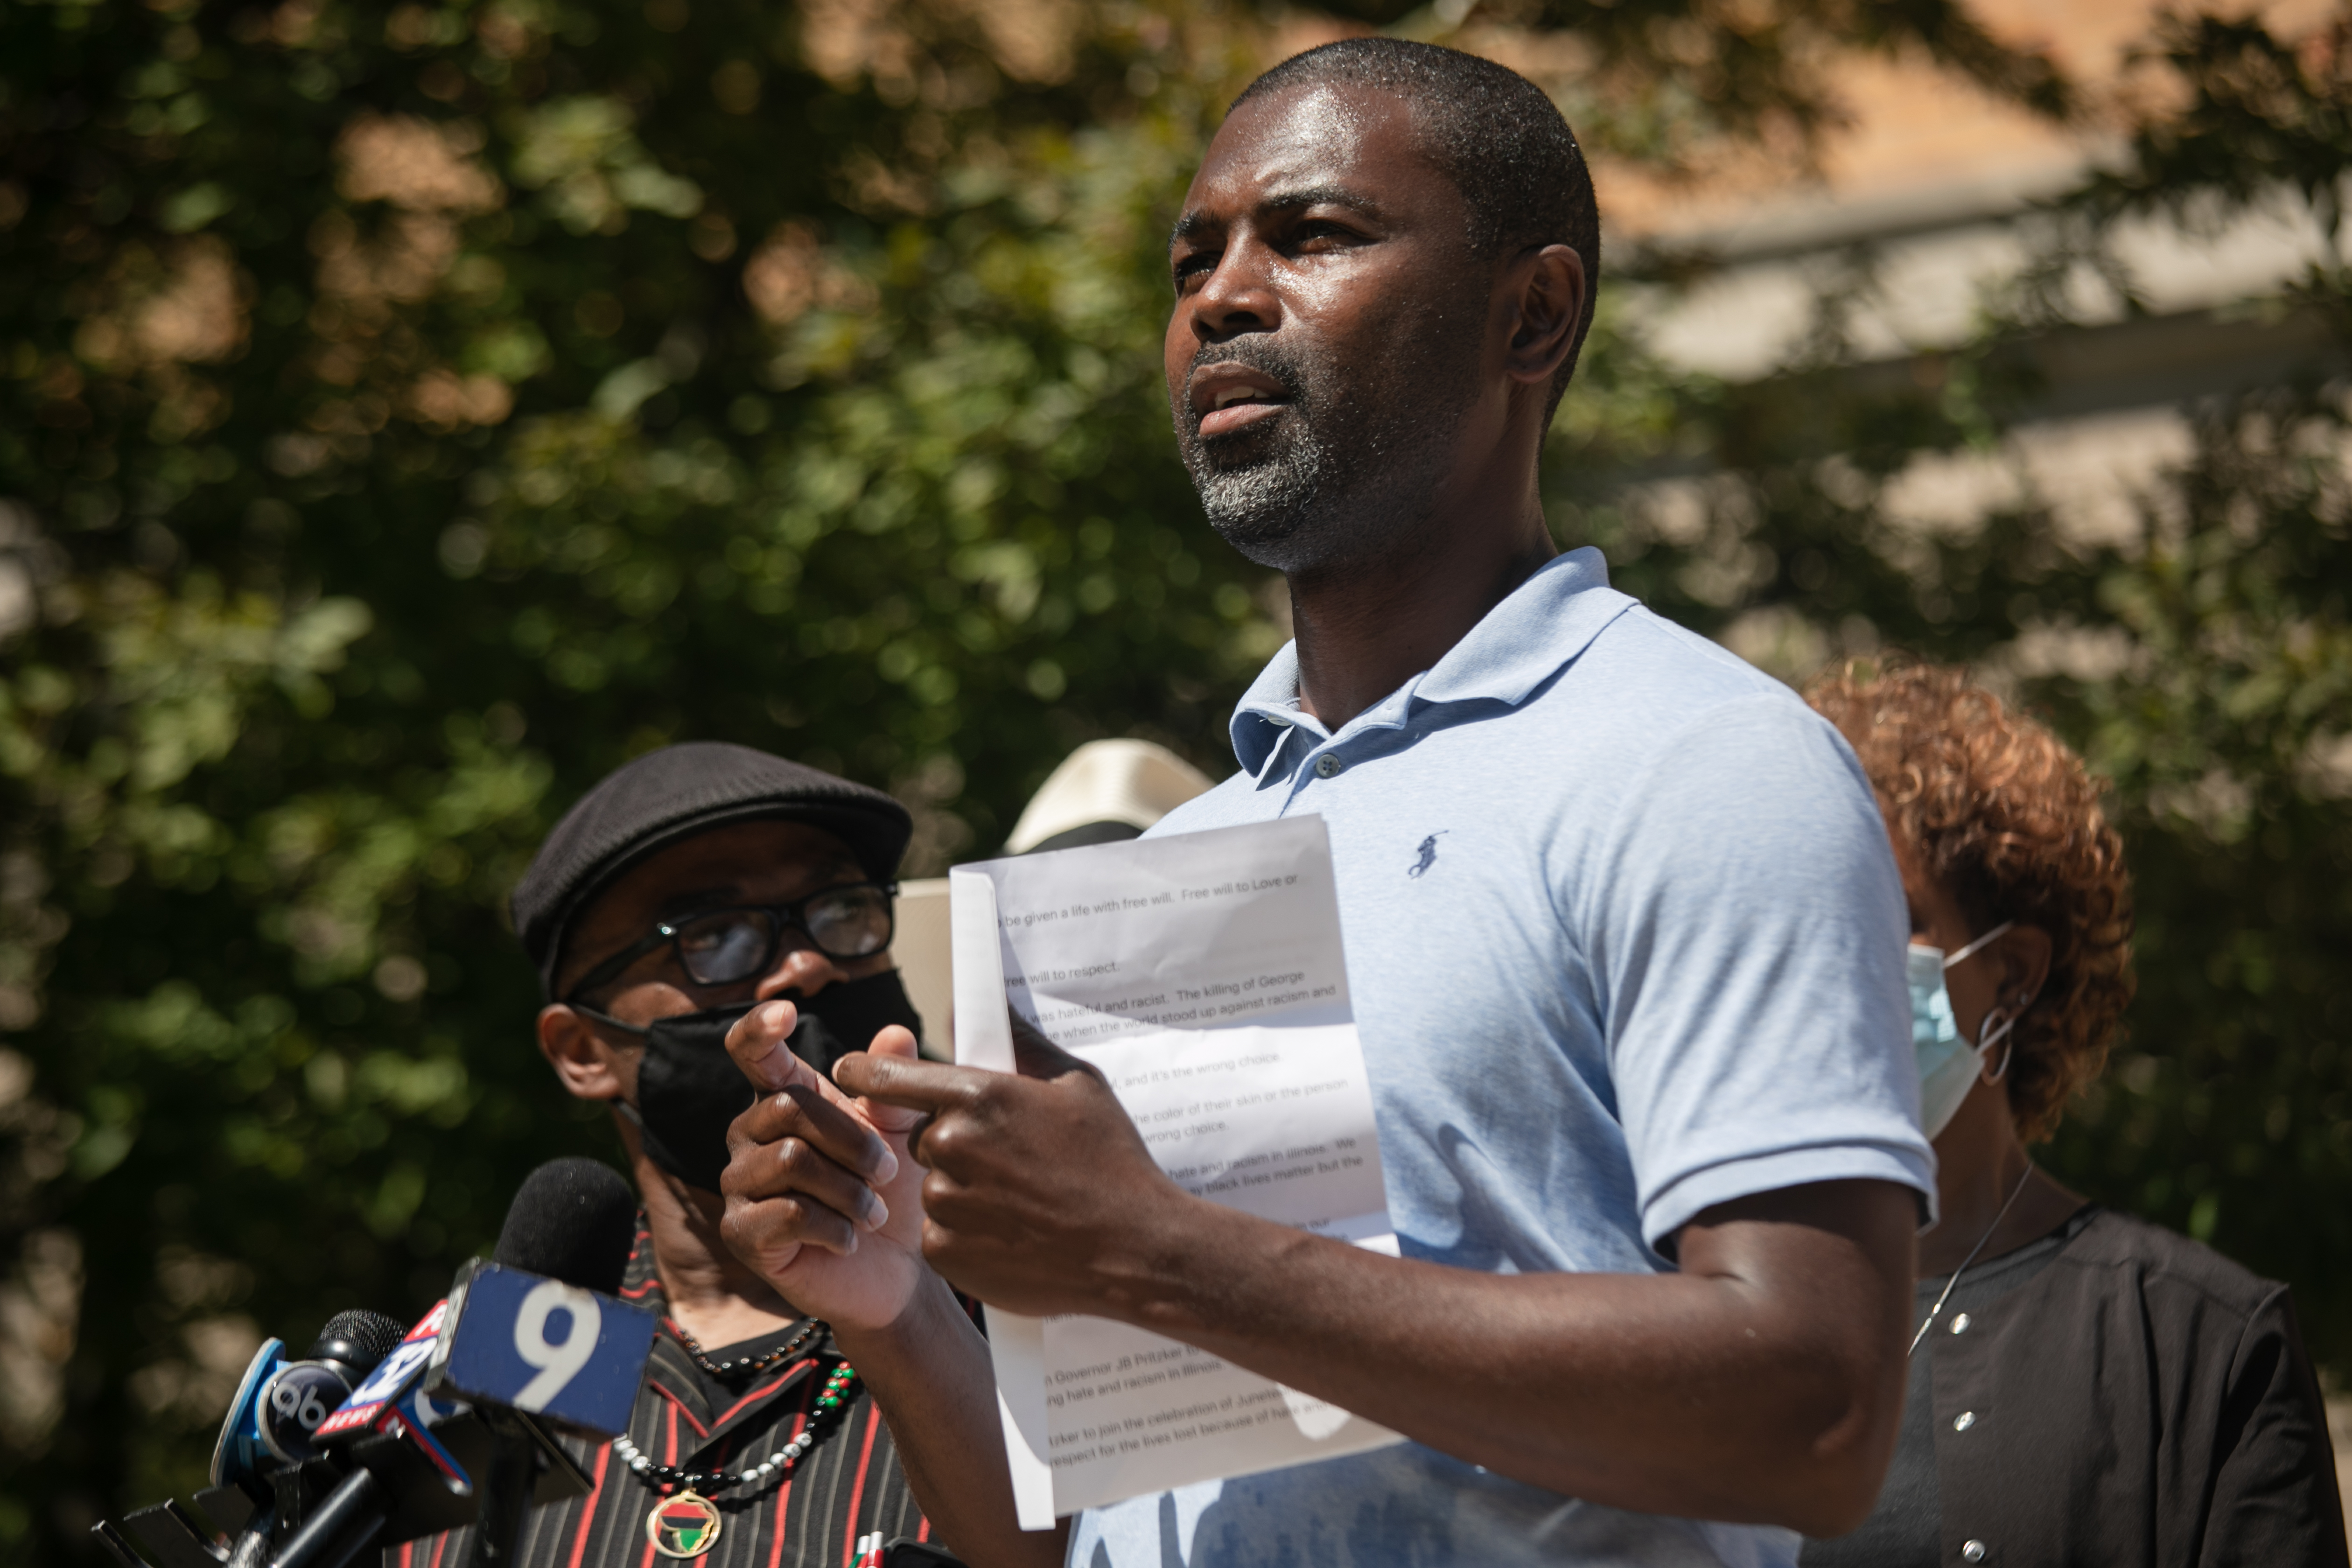 State Rep. La Shawn K. Ford speaks during a news  conference Tuesday, June 16, 2020, calling on Gov. J.B. Pritzker to lower flags in commemoration of Juneteenth. The news conference was held at Oak Park and River Forest High School.